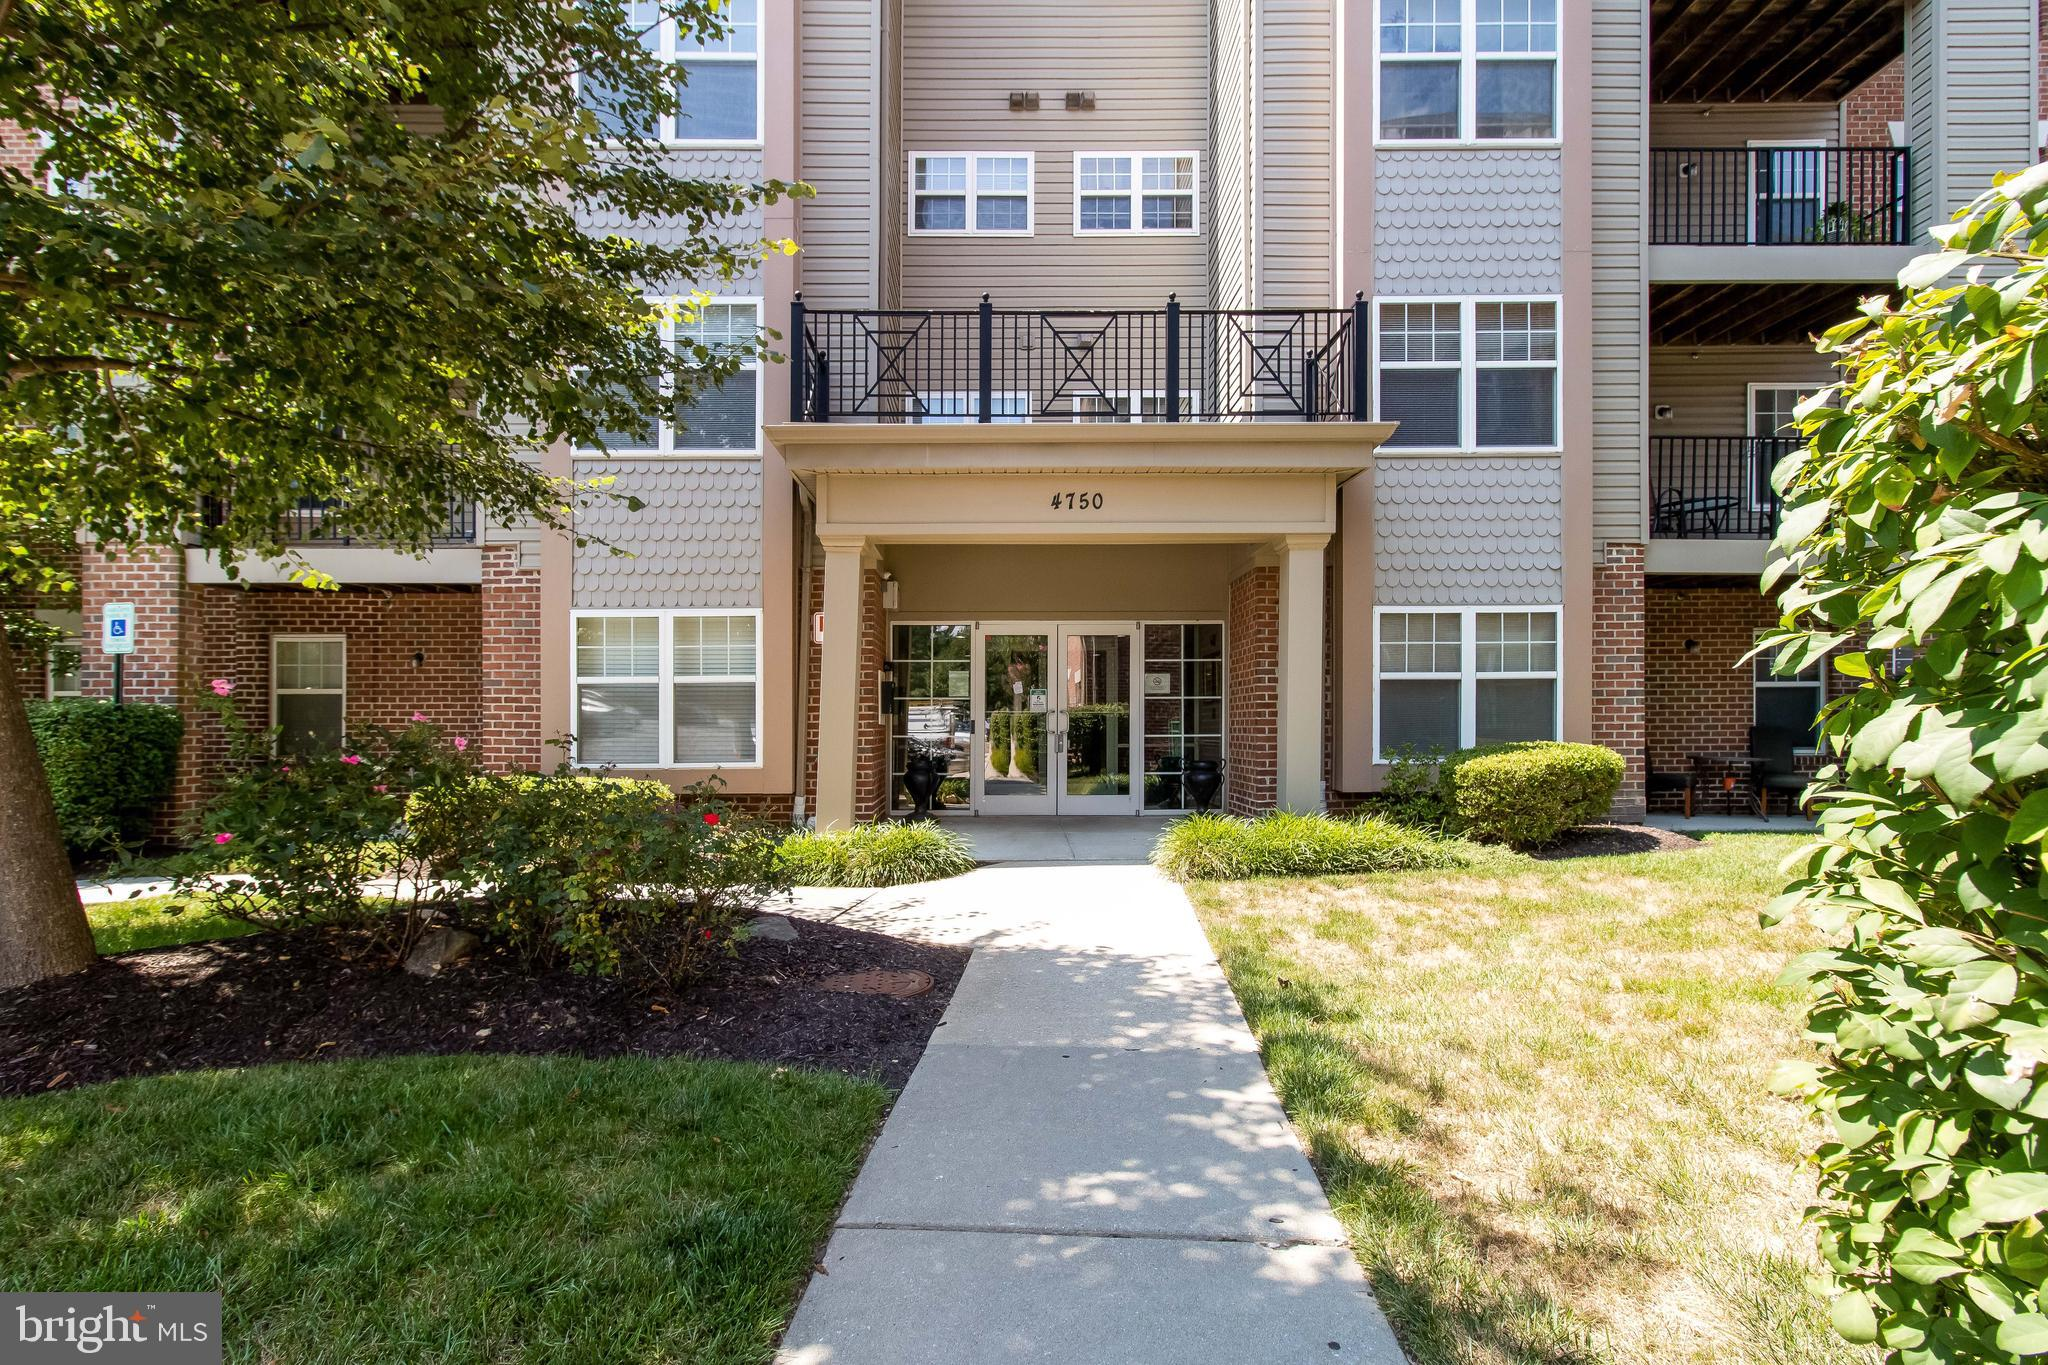 4750 Coyle Rd #402, Owings Mills, MD, 21117